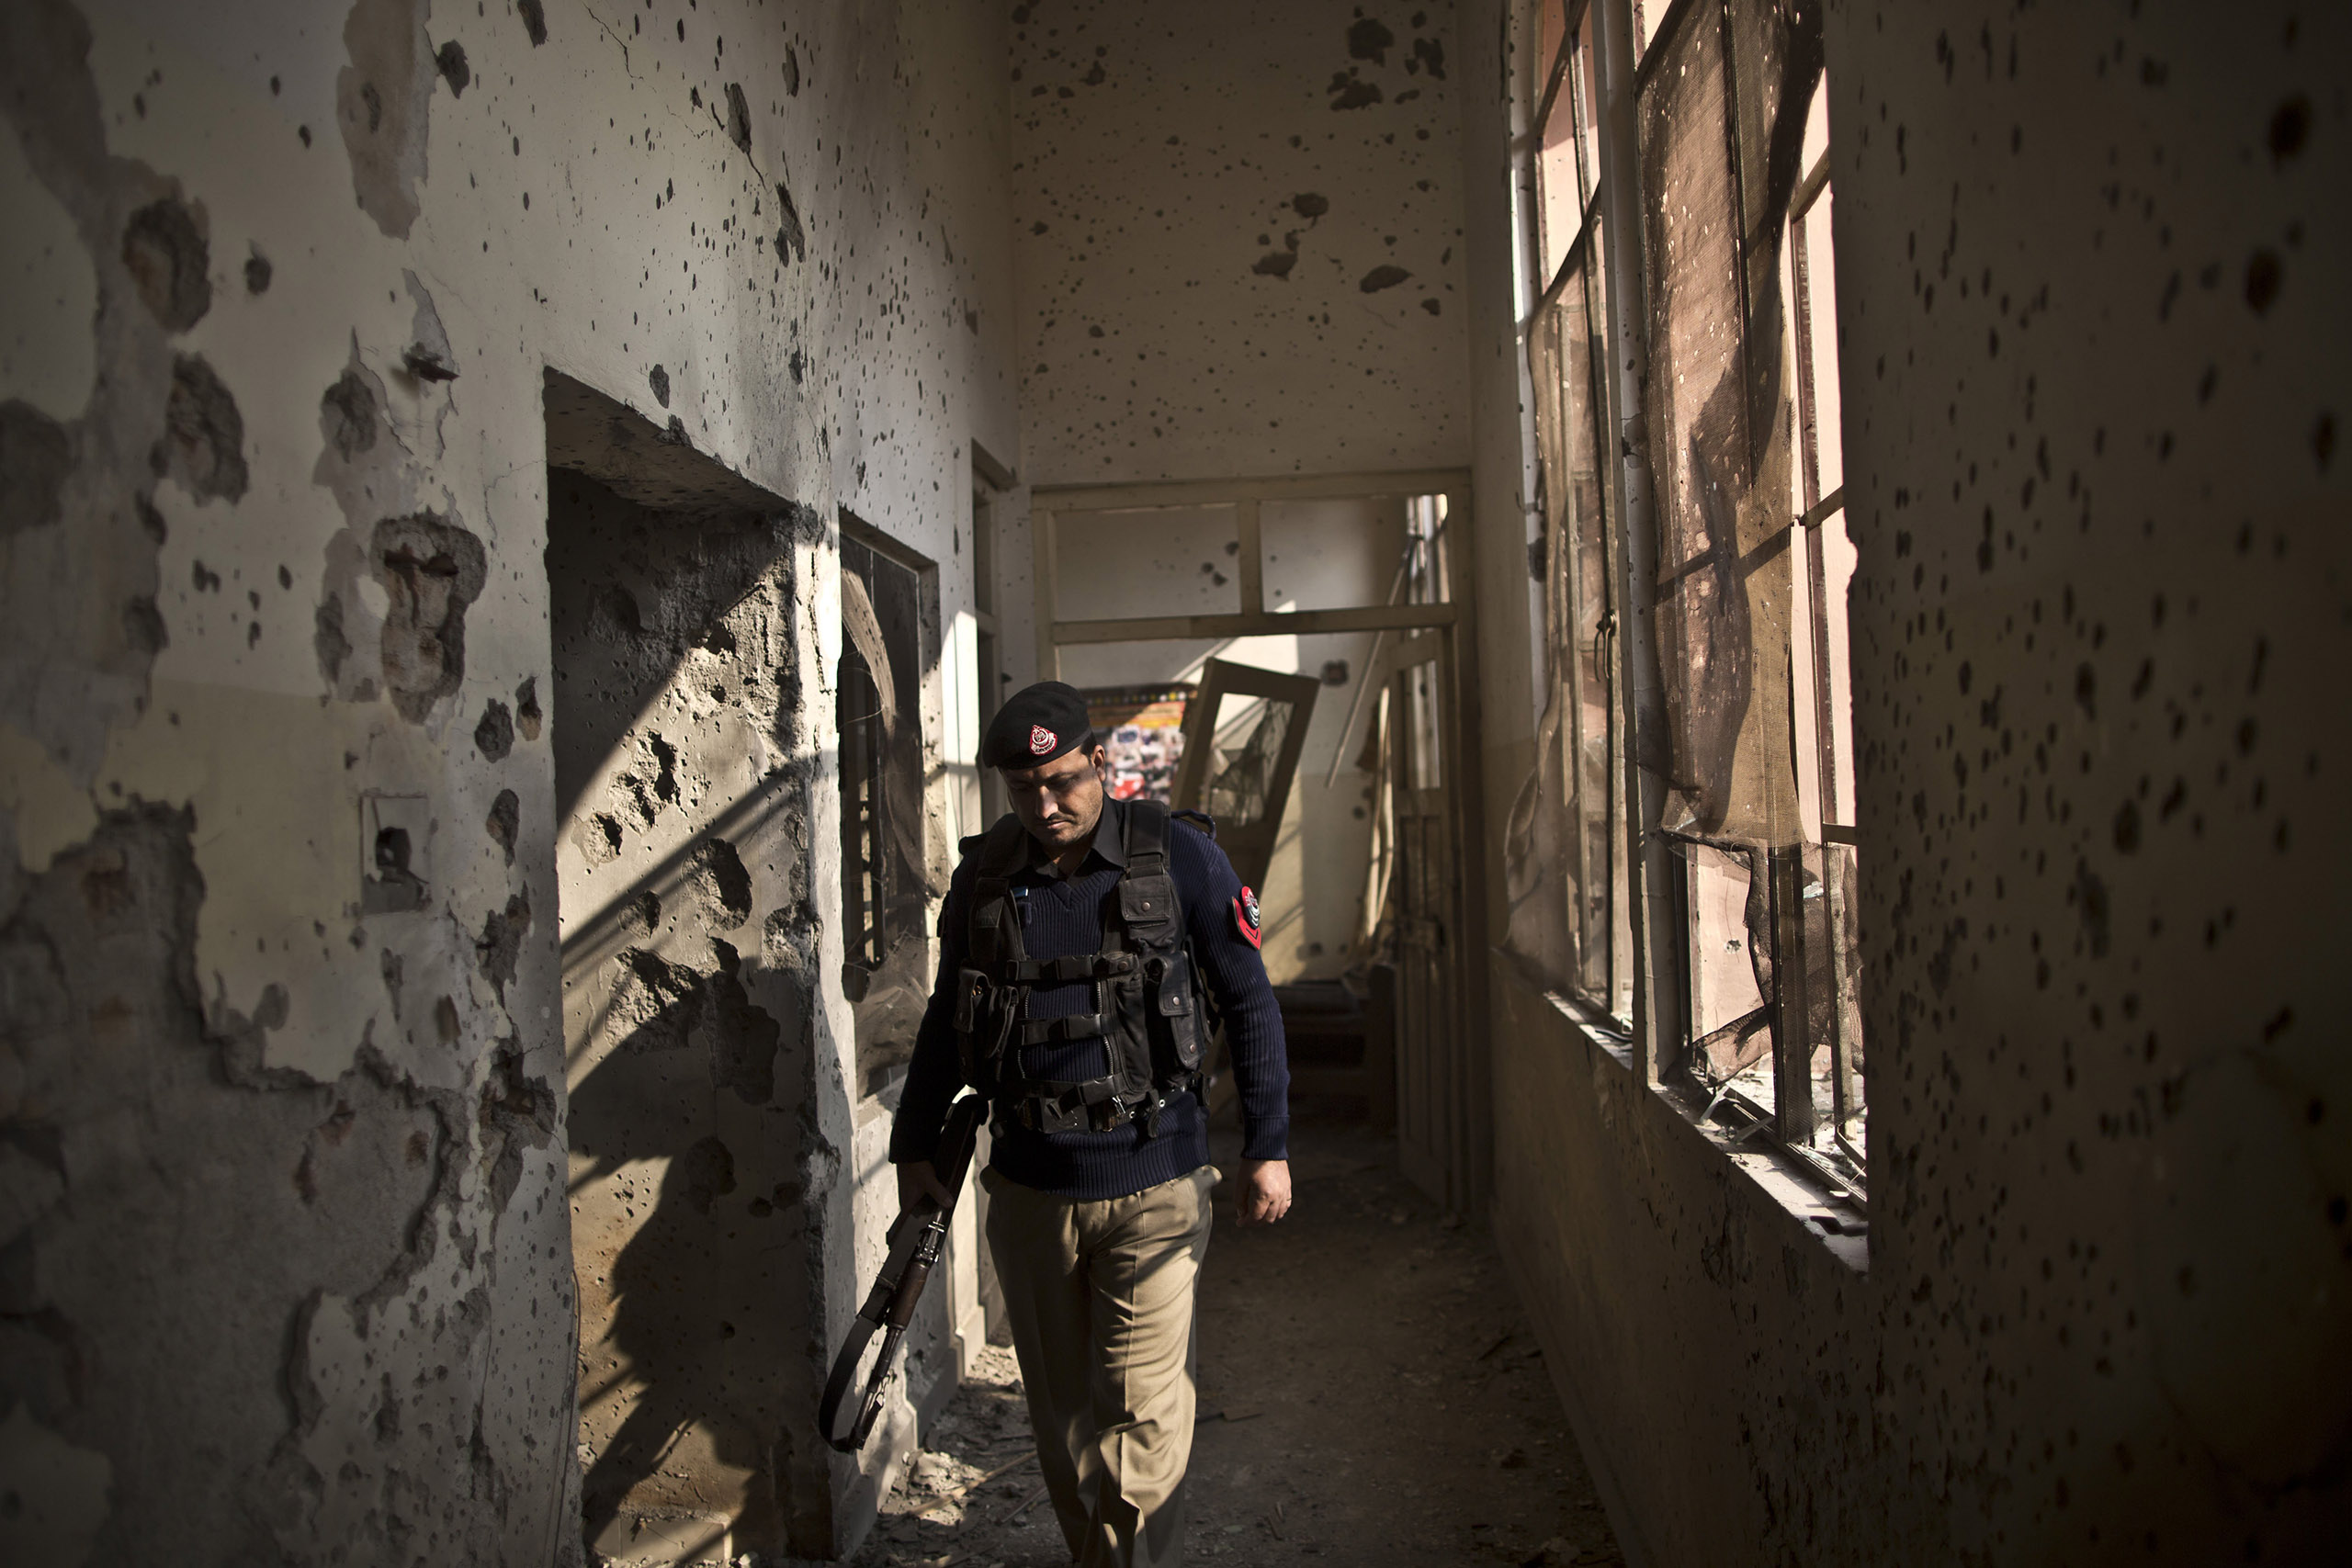 A Pakistani police officer walks through a hallway inside the Army Public School, which was attacked on Dec. 16 by the Pakistani Taliban. Peshawar, Pakistan. Dec. 18, 2014.